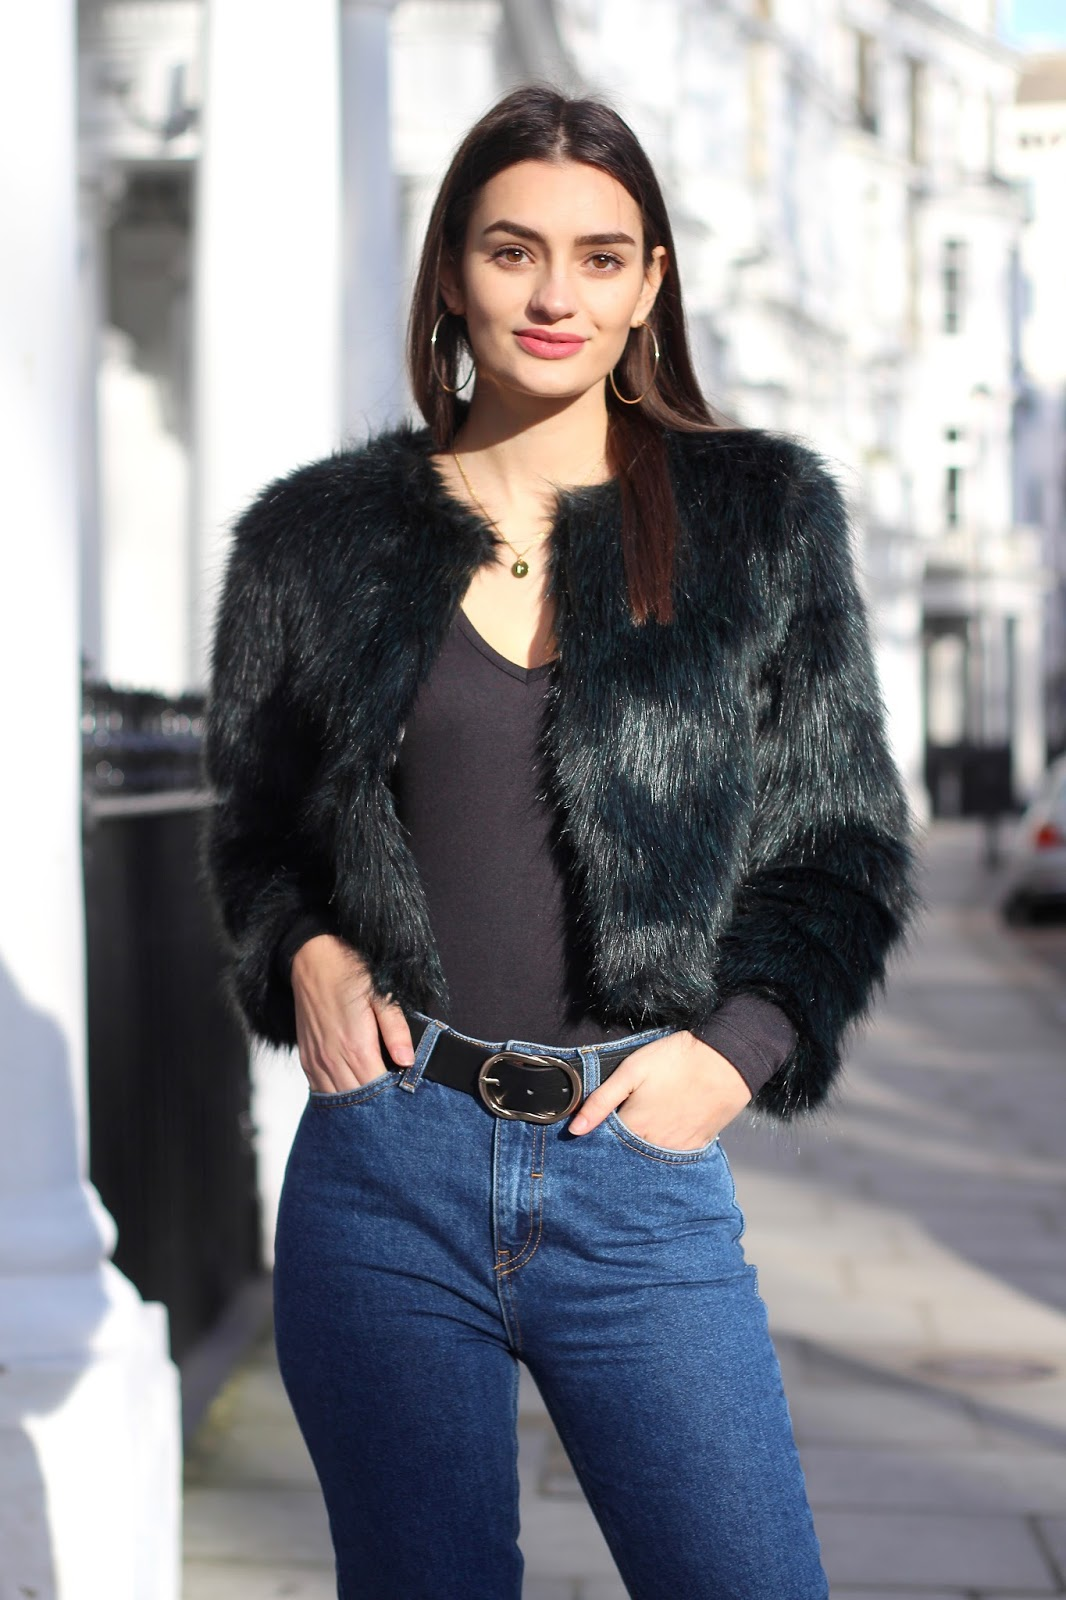 london blogger peexo fashion blog